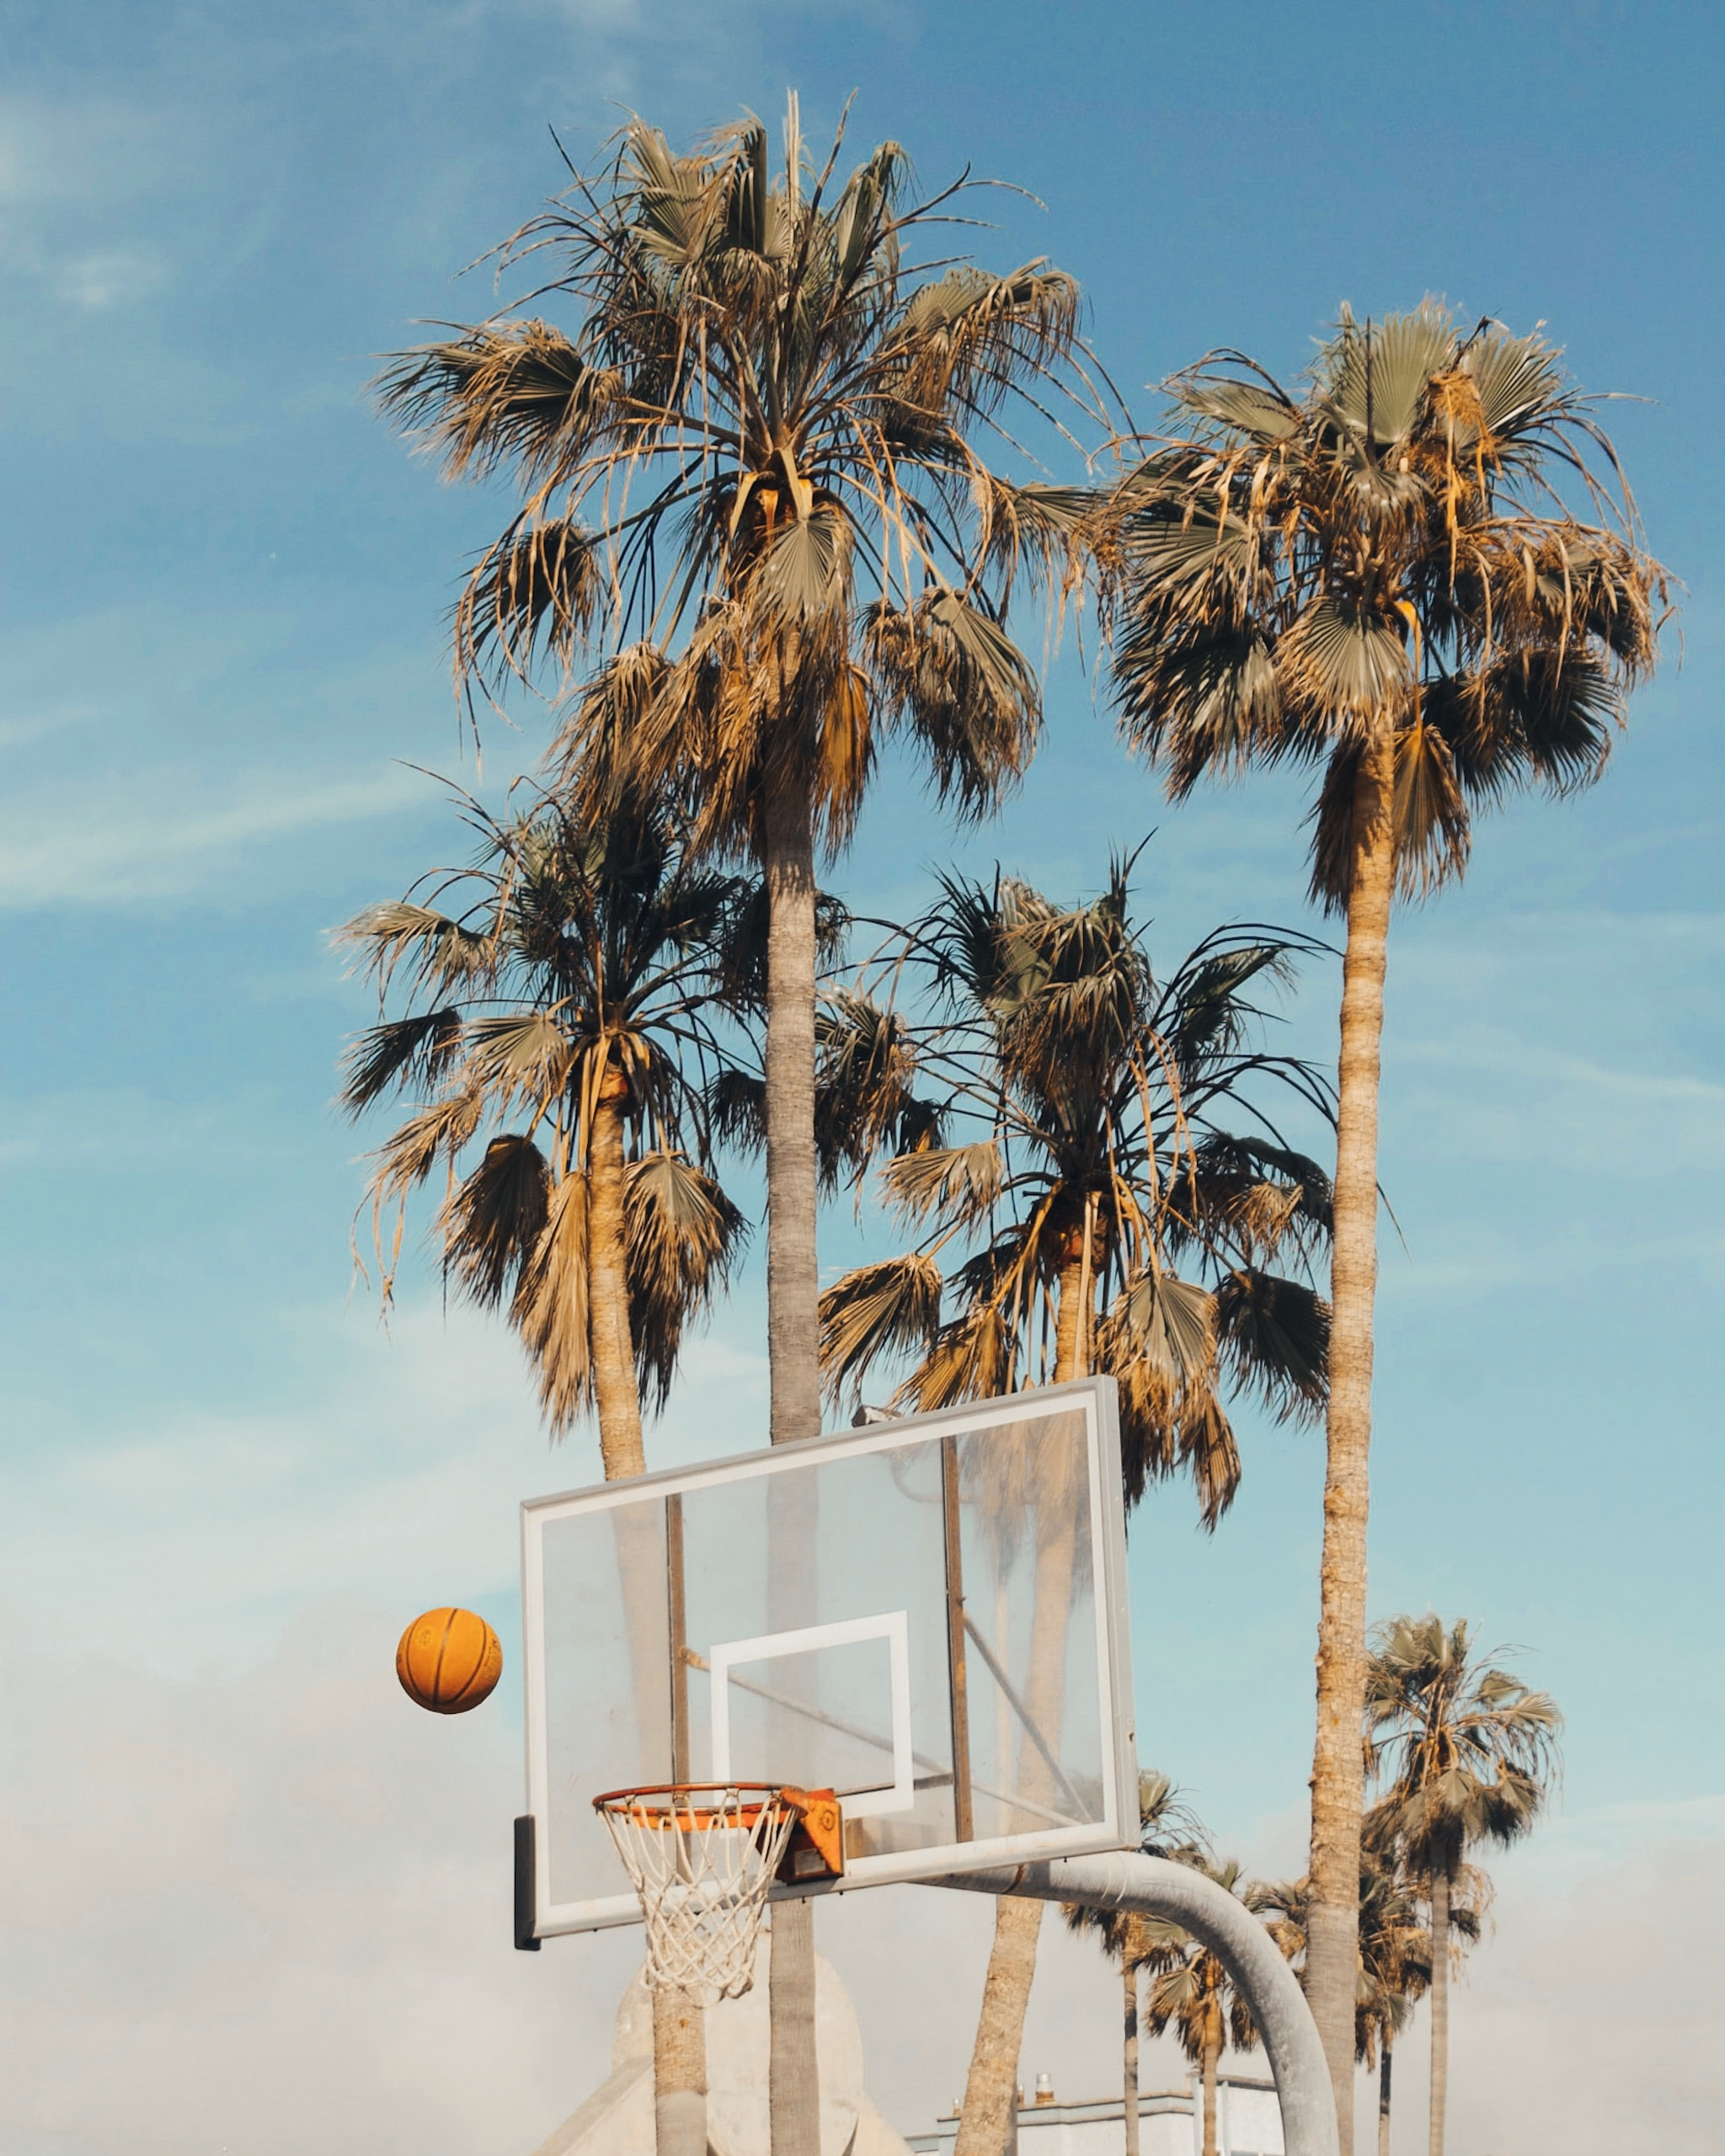 white and gray basketball system beside coconut trees